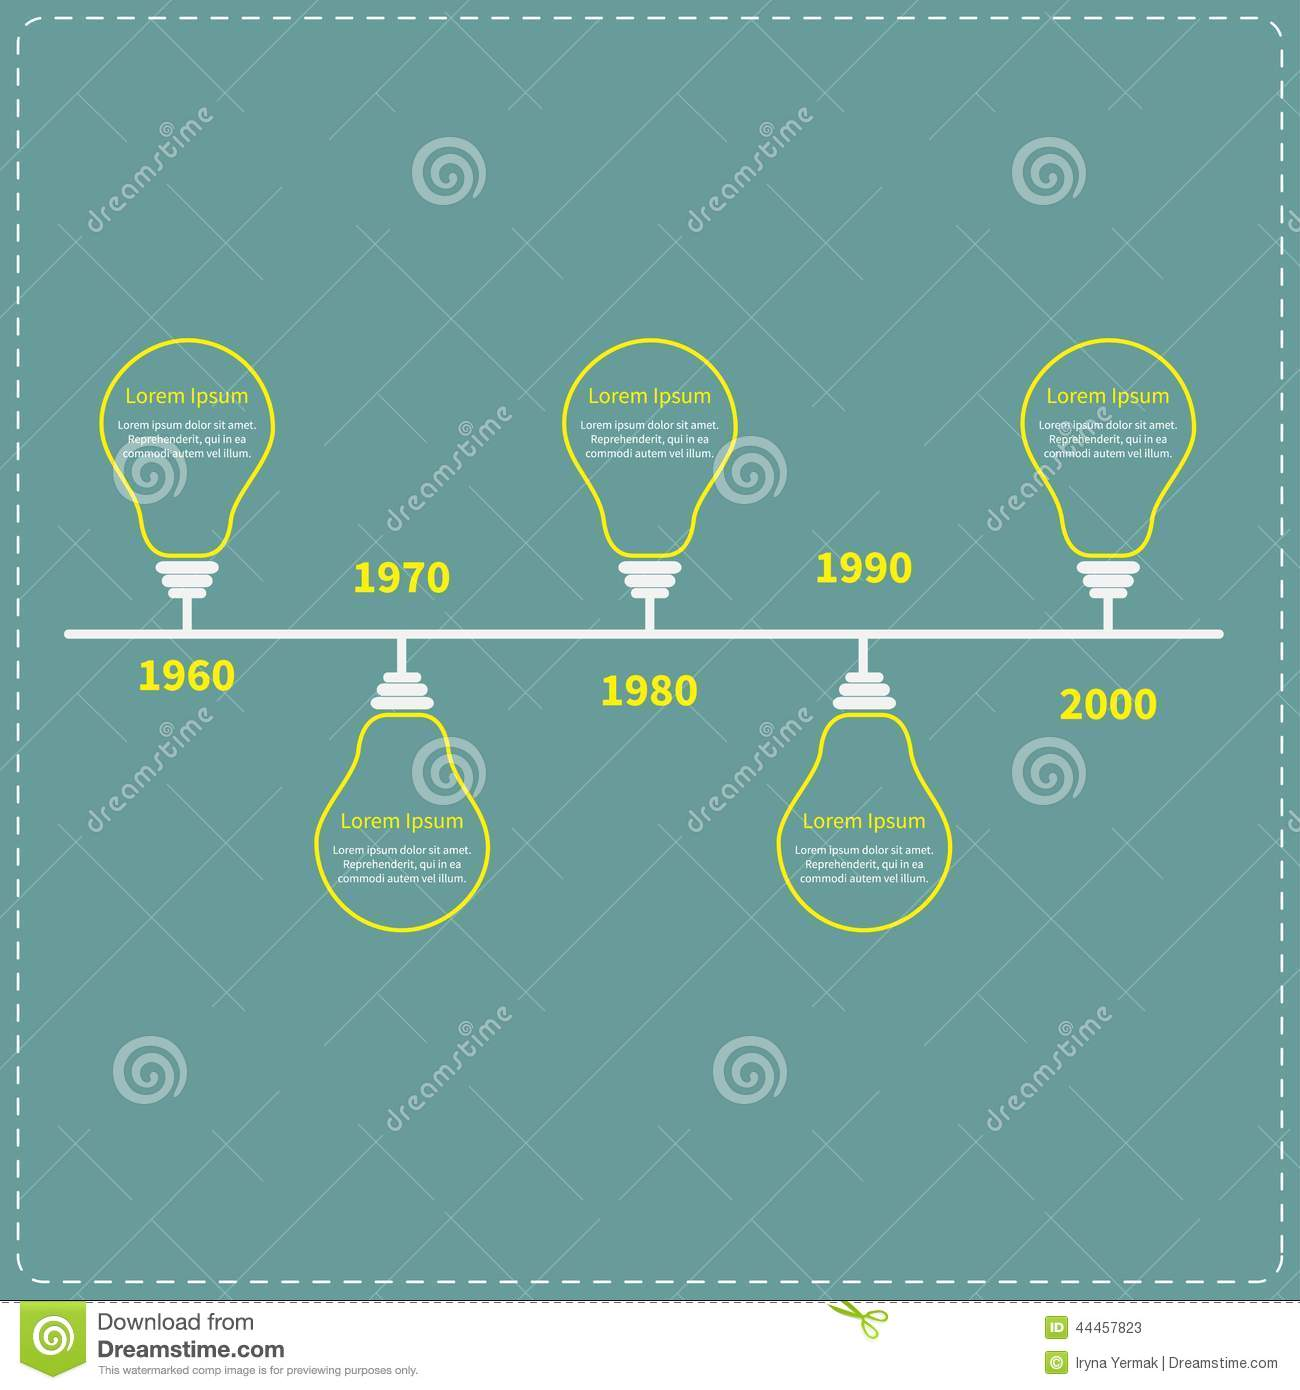 Timeline Infographic With Yellow Light Idea Bulb Stock